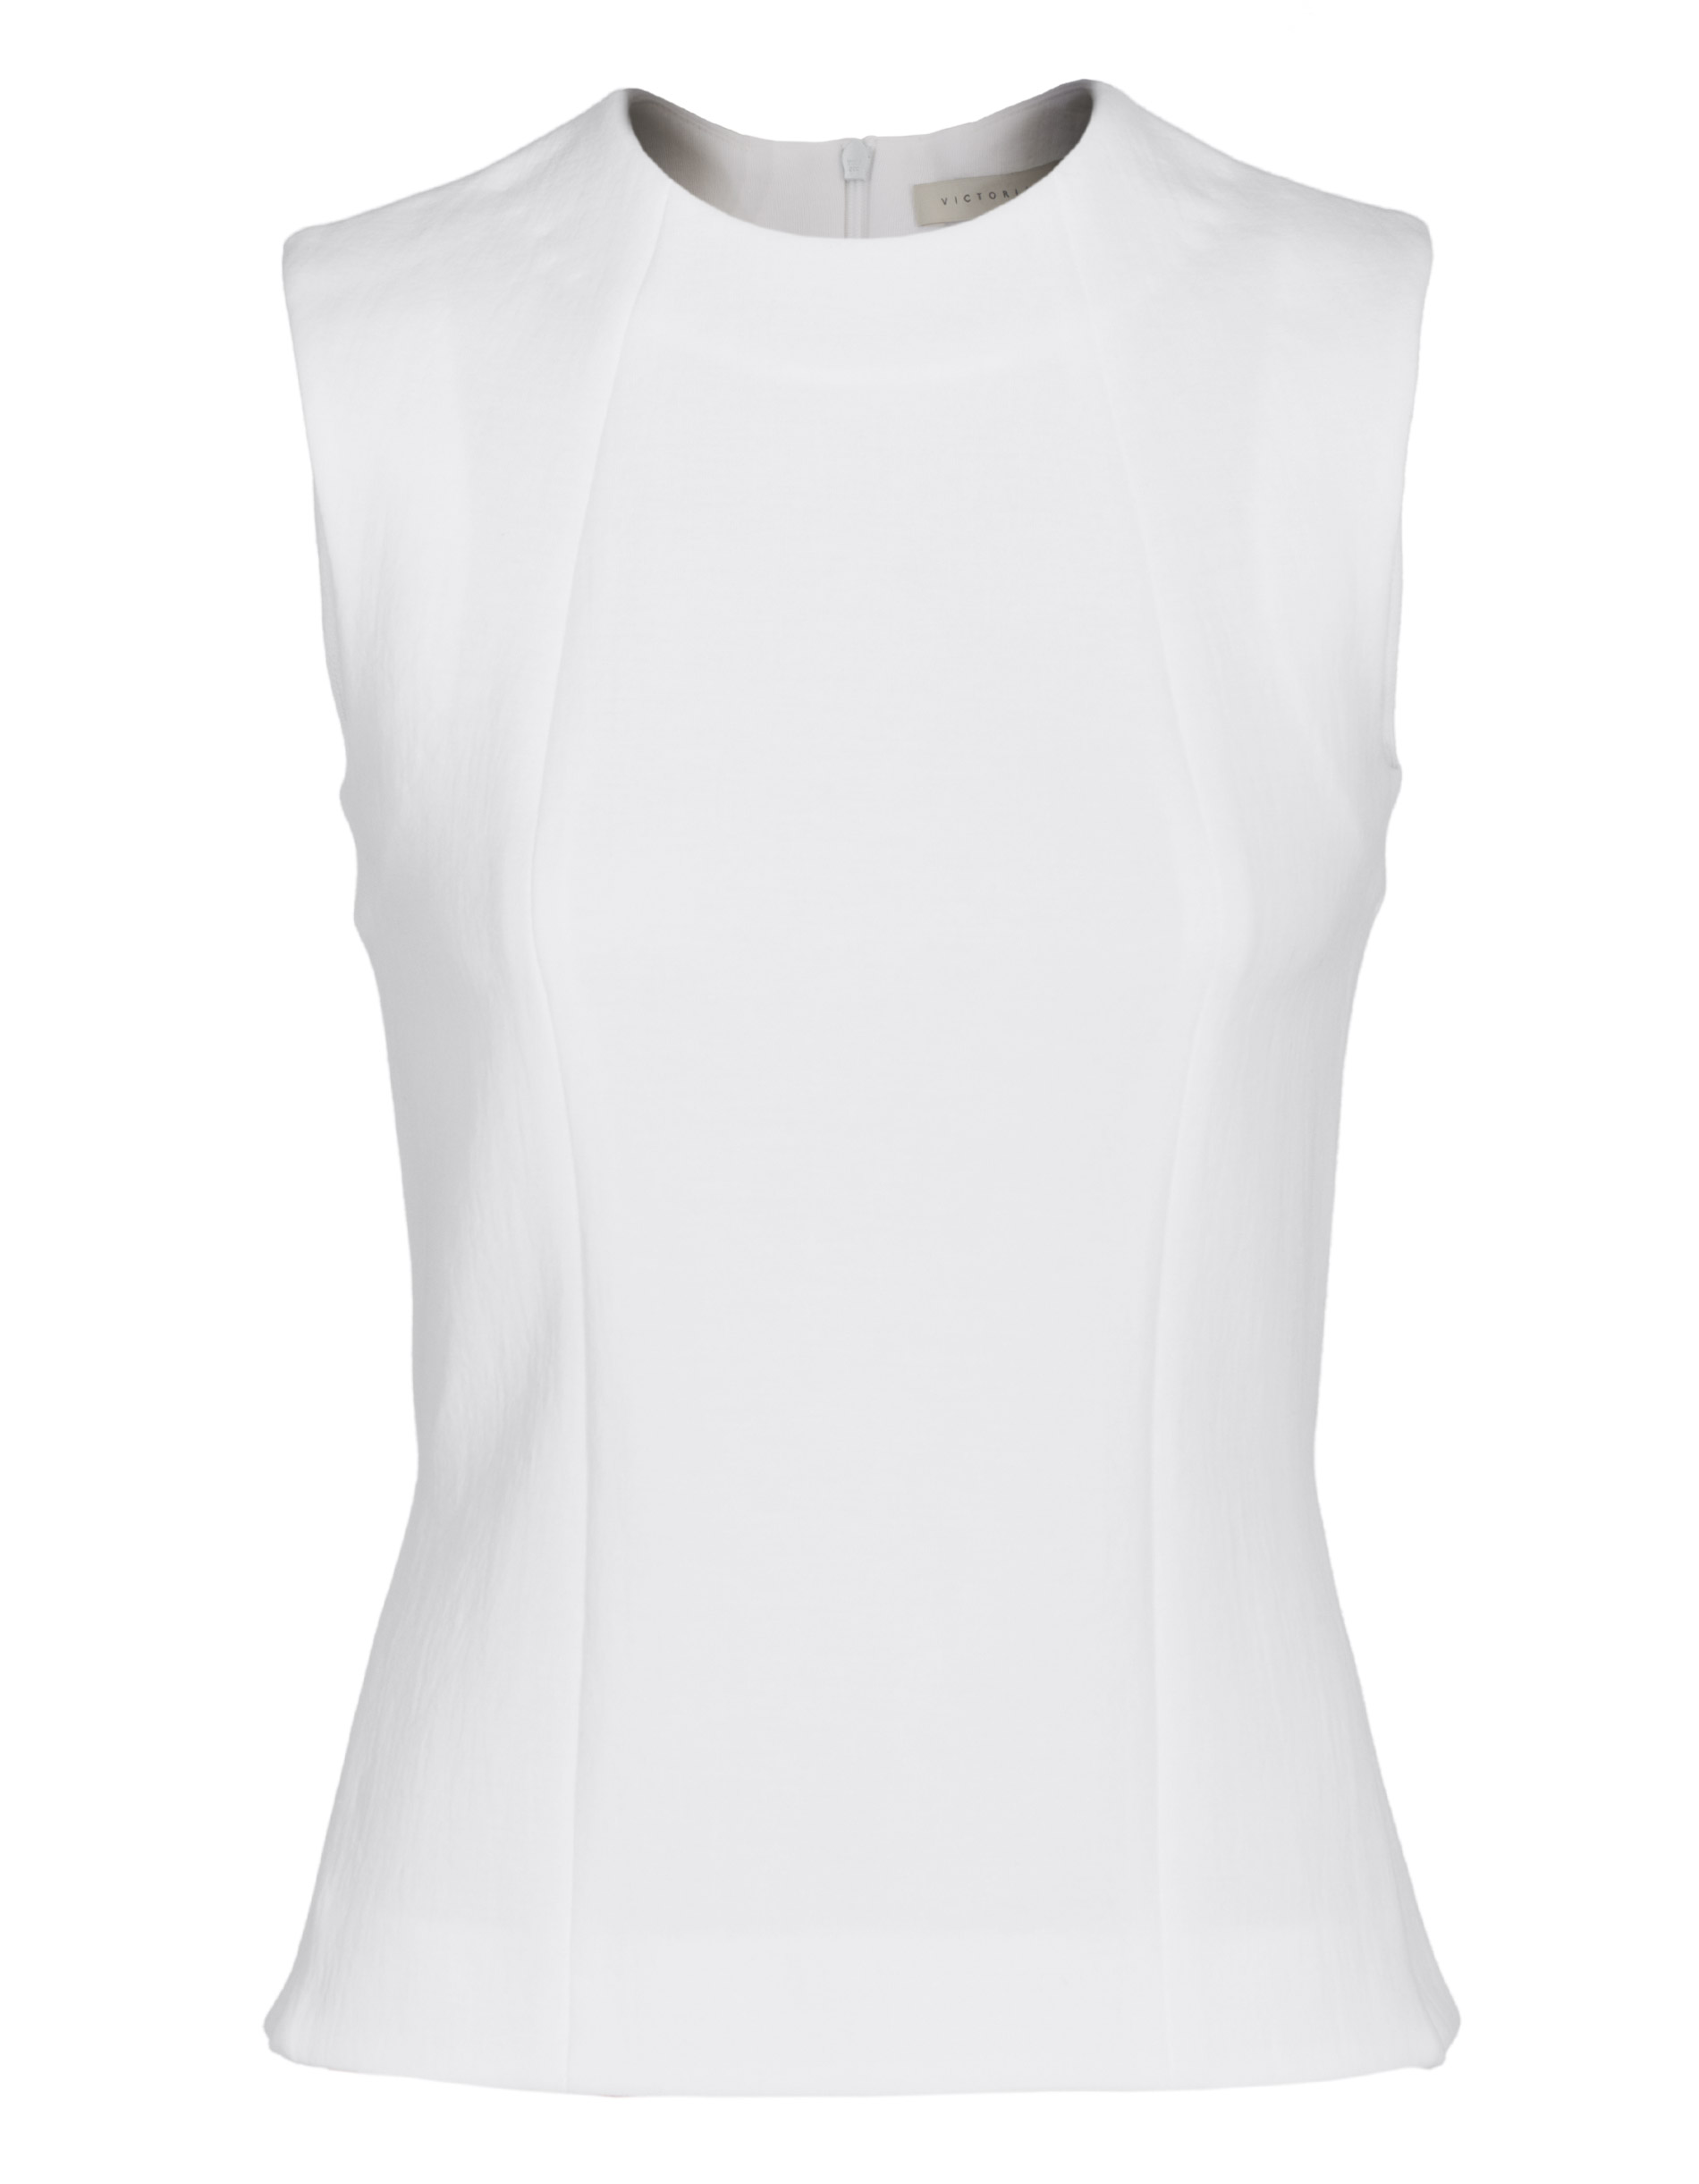 Victoria beckham  side split shell white ärmelloses top